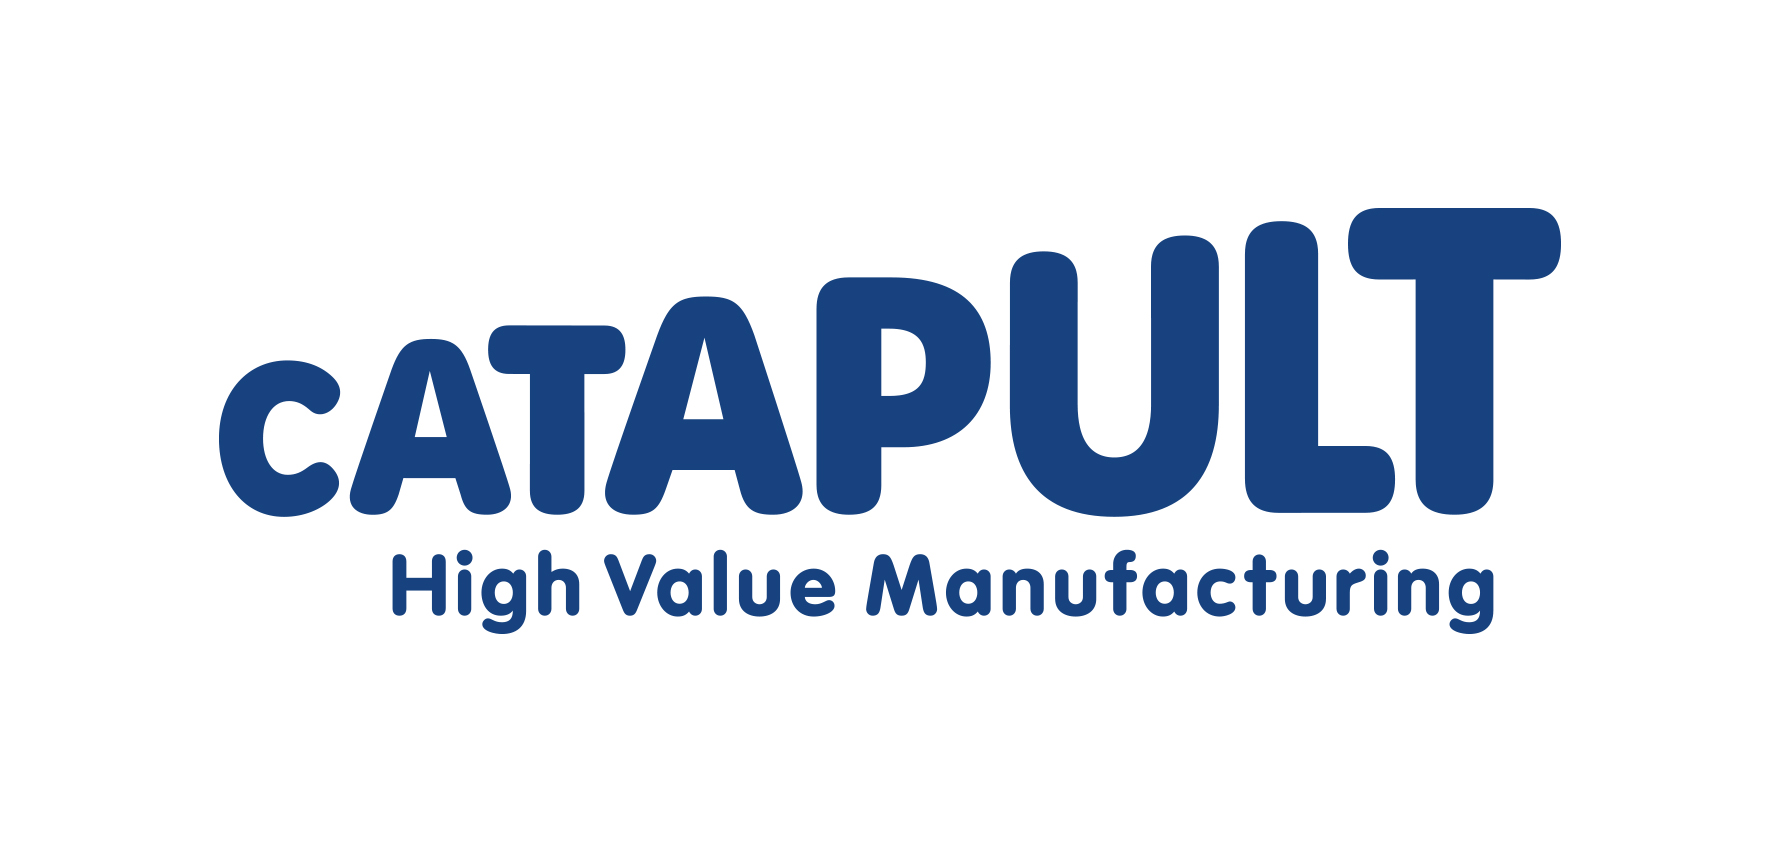 Tamarin Adshead  - High Value Manufacturing Catapult